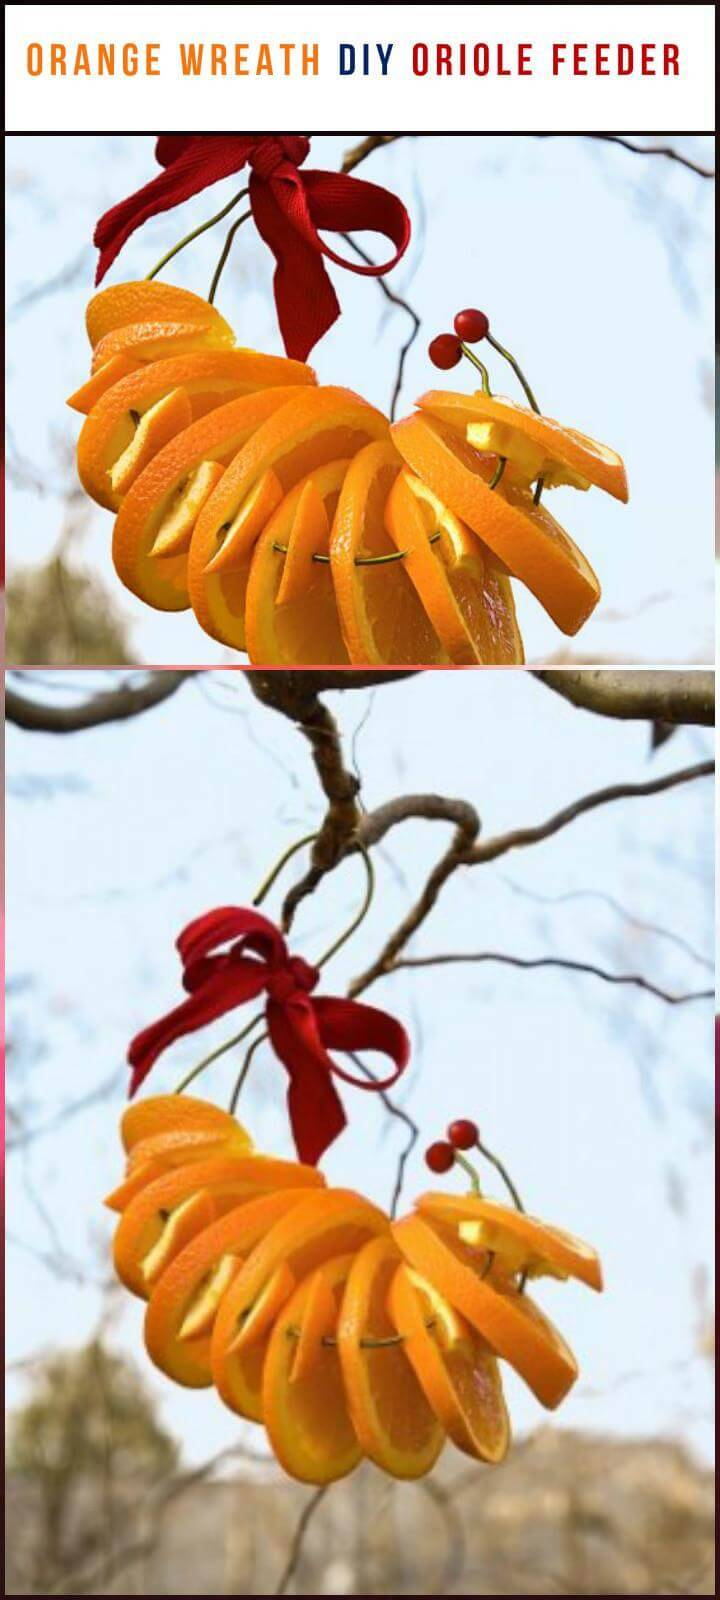 orange slices wreath oriole feeder